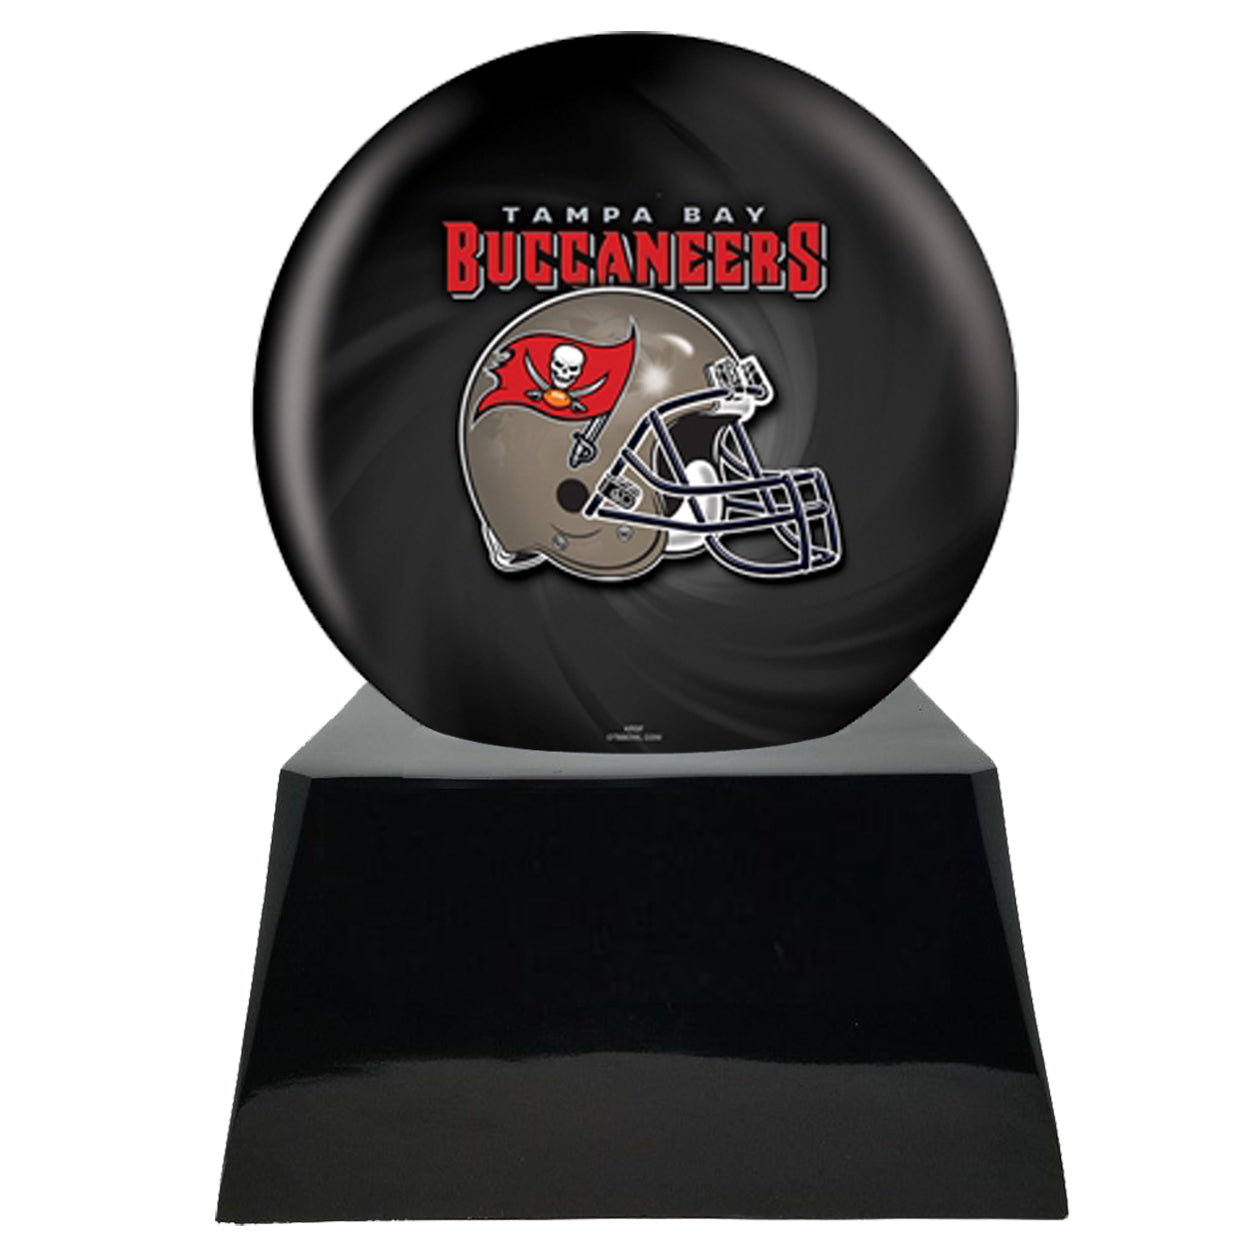 Football Cremation Urn and Tampa Bay Buccaneers Ball Decor with Custom Metal Plaque